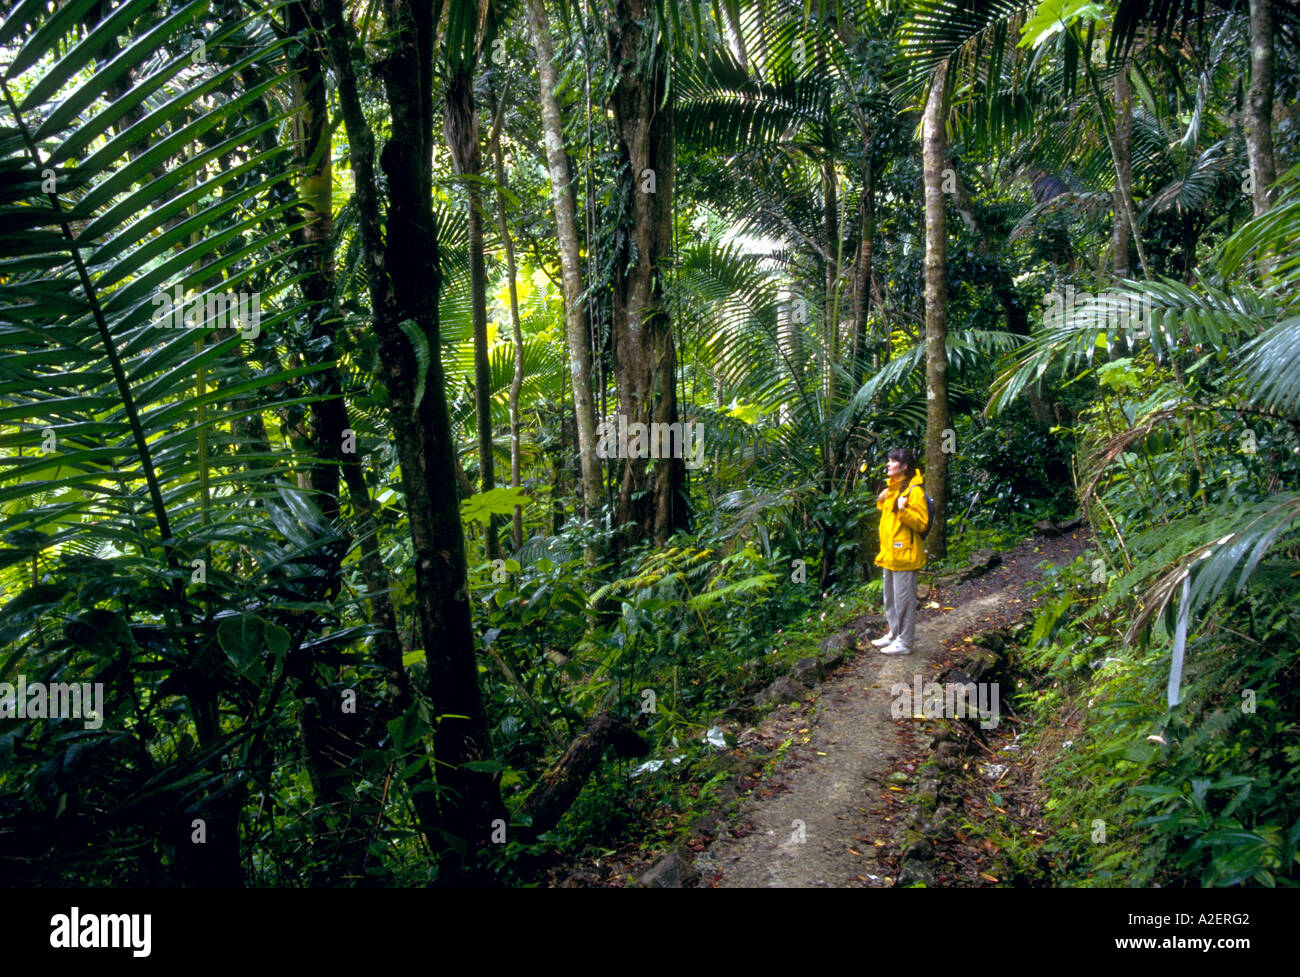 Puerto Rico, Caribbean National Park. El Vendue Rainforest.  Hiker on Big Trees Trail. - Stock Image